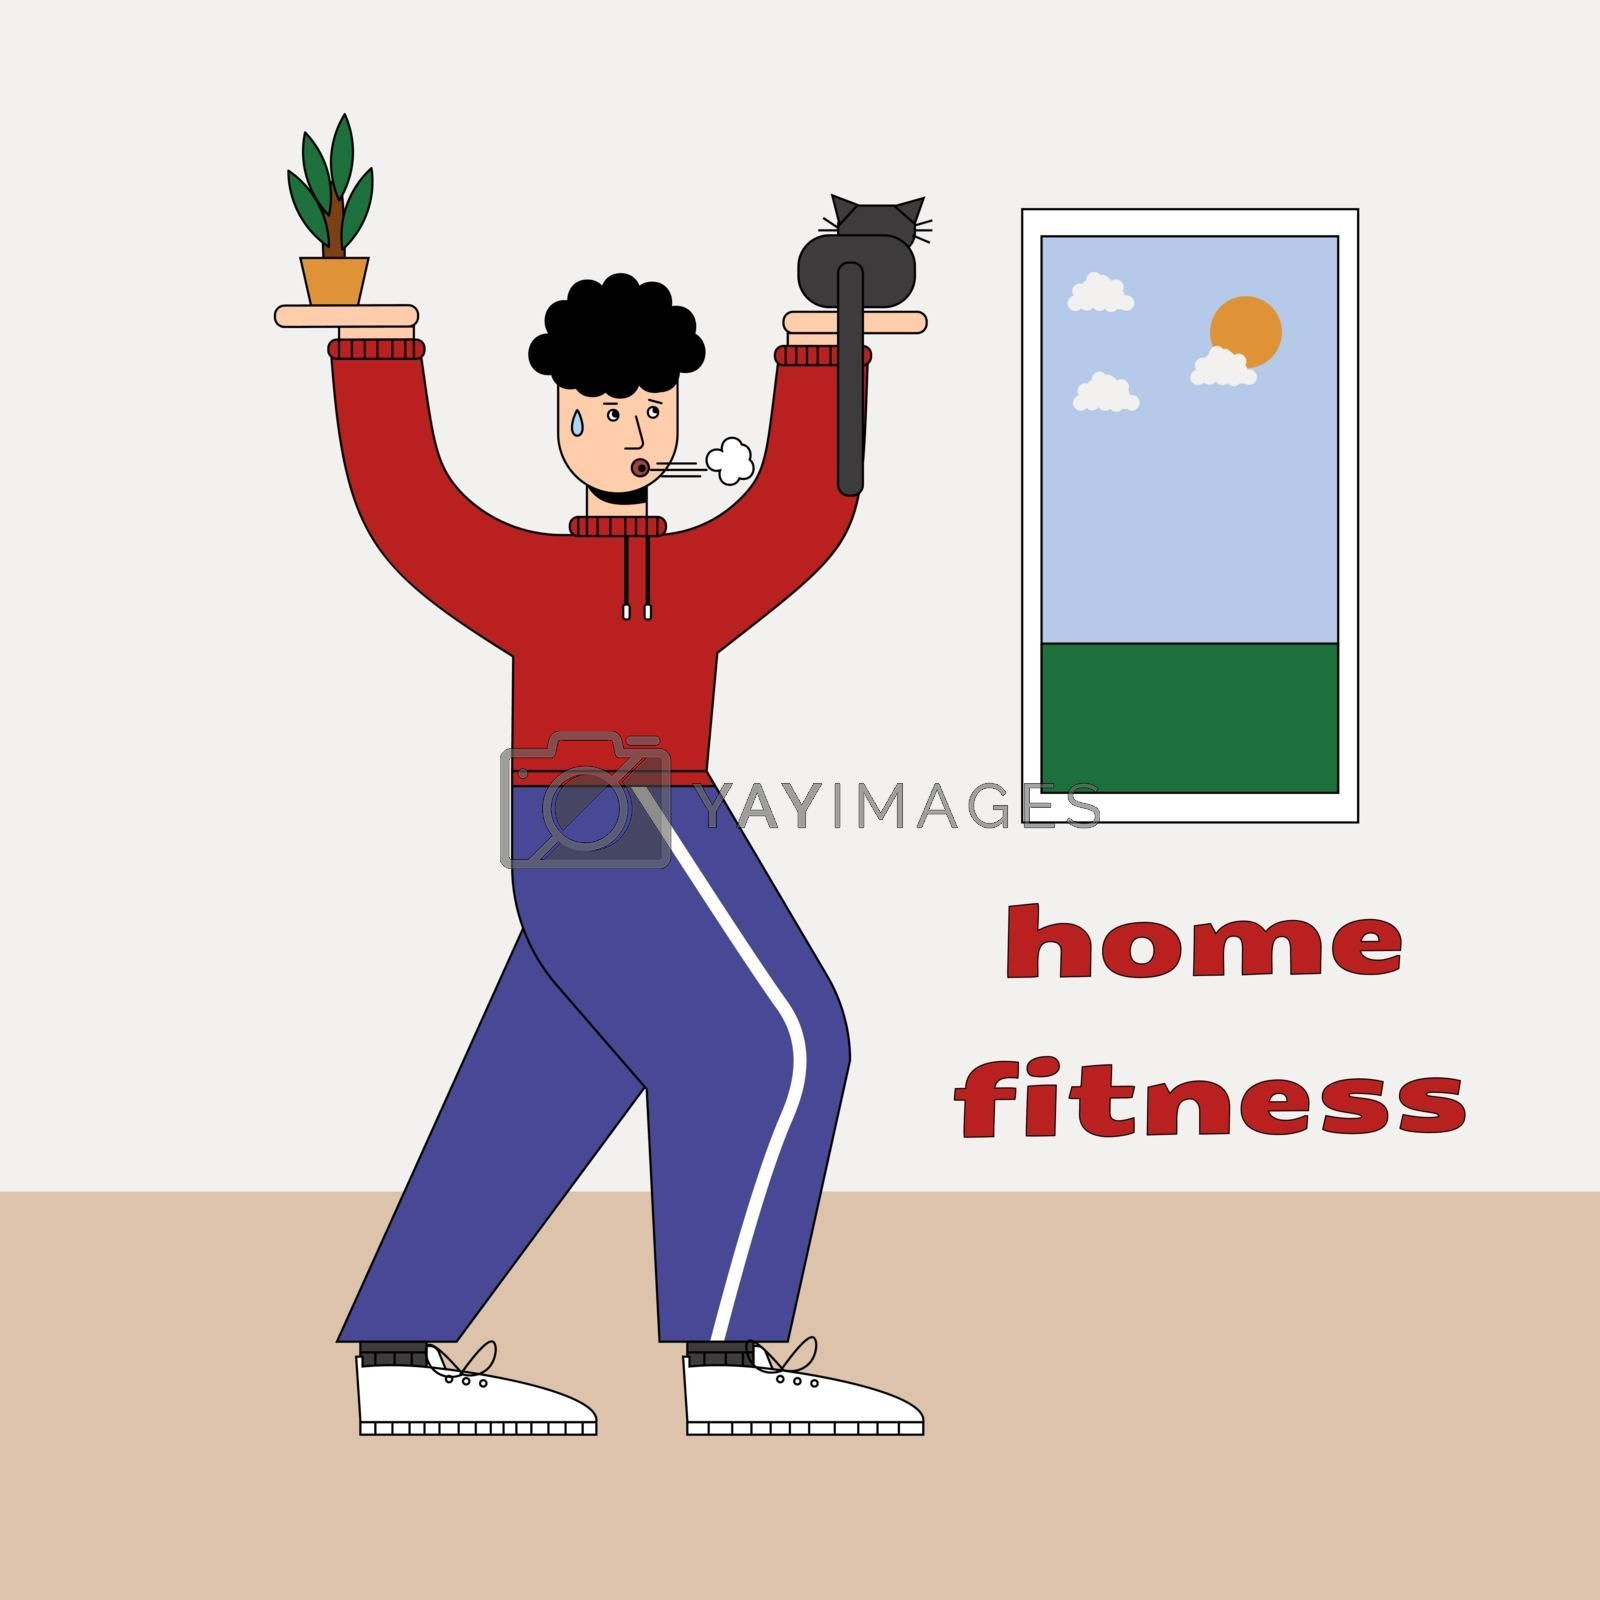 Man with cats doing gymnastics at home, humorous fitness motivational cartoon, character doing exercises indoors. Cauchois sits on the palm instead of a kettlebell